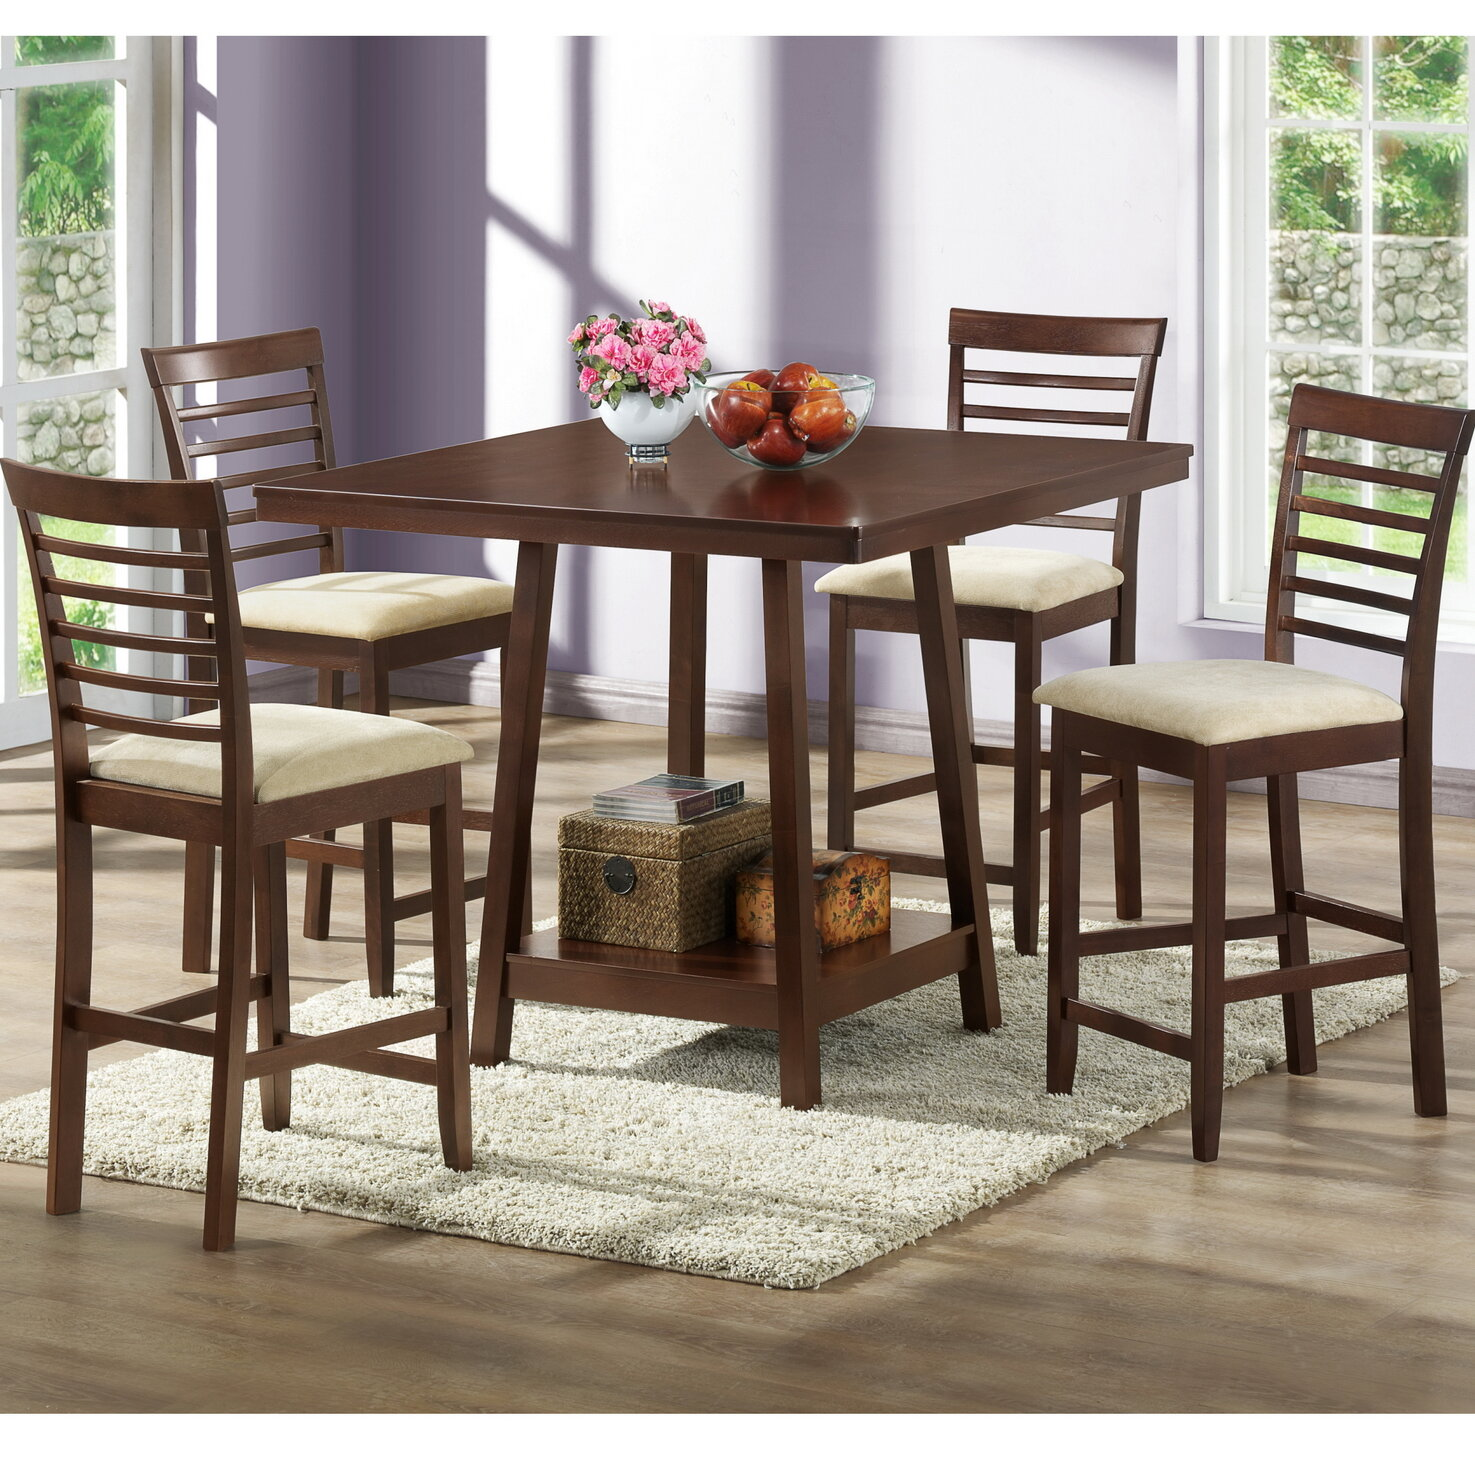 Buy Now Pay Later Wholesale Interiors Baxton Studio 5 Piece Counter Height Dining Set